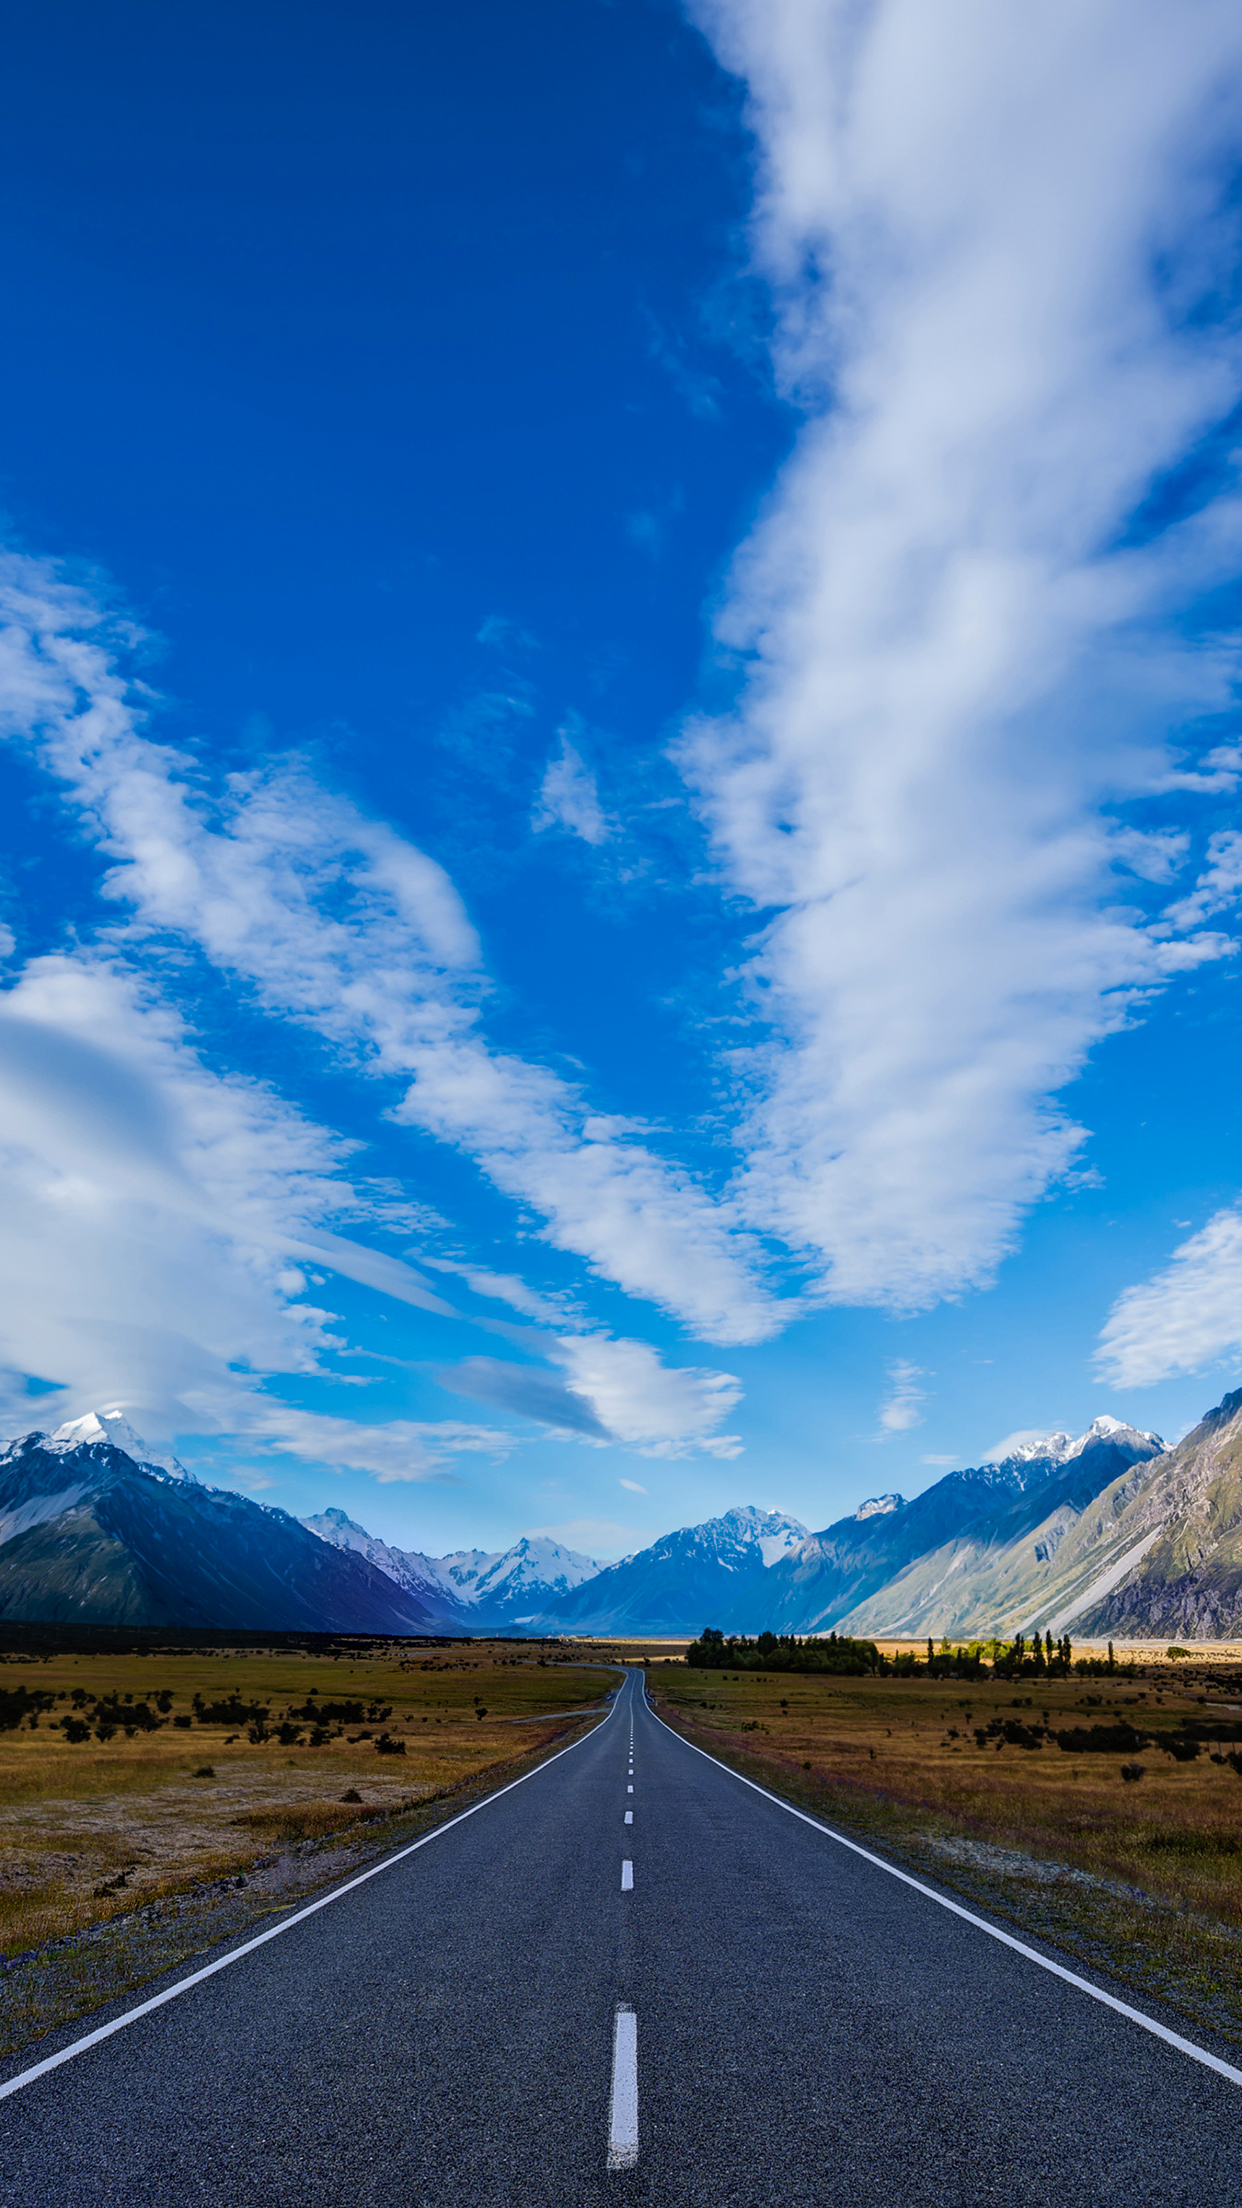 new-zealand road wallpaper for iphone x  8  7  6